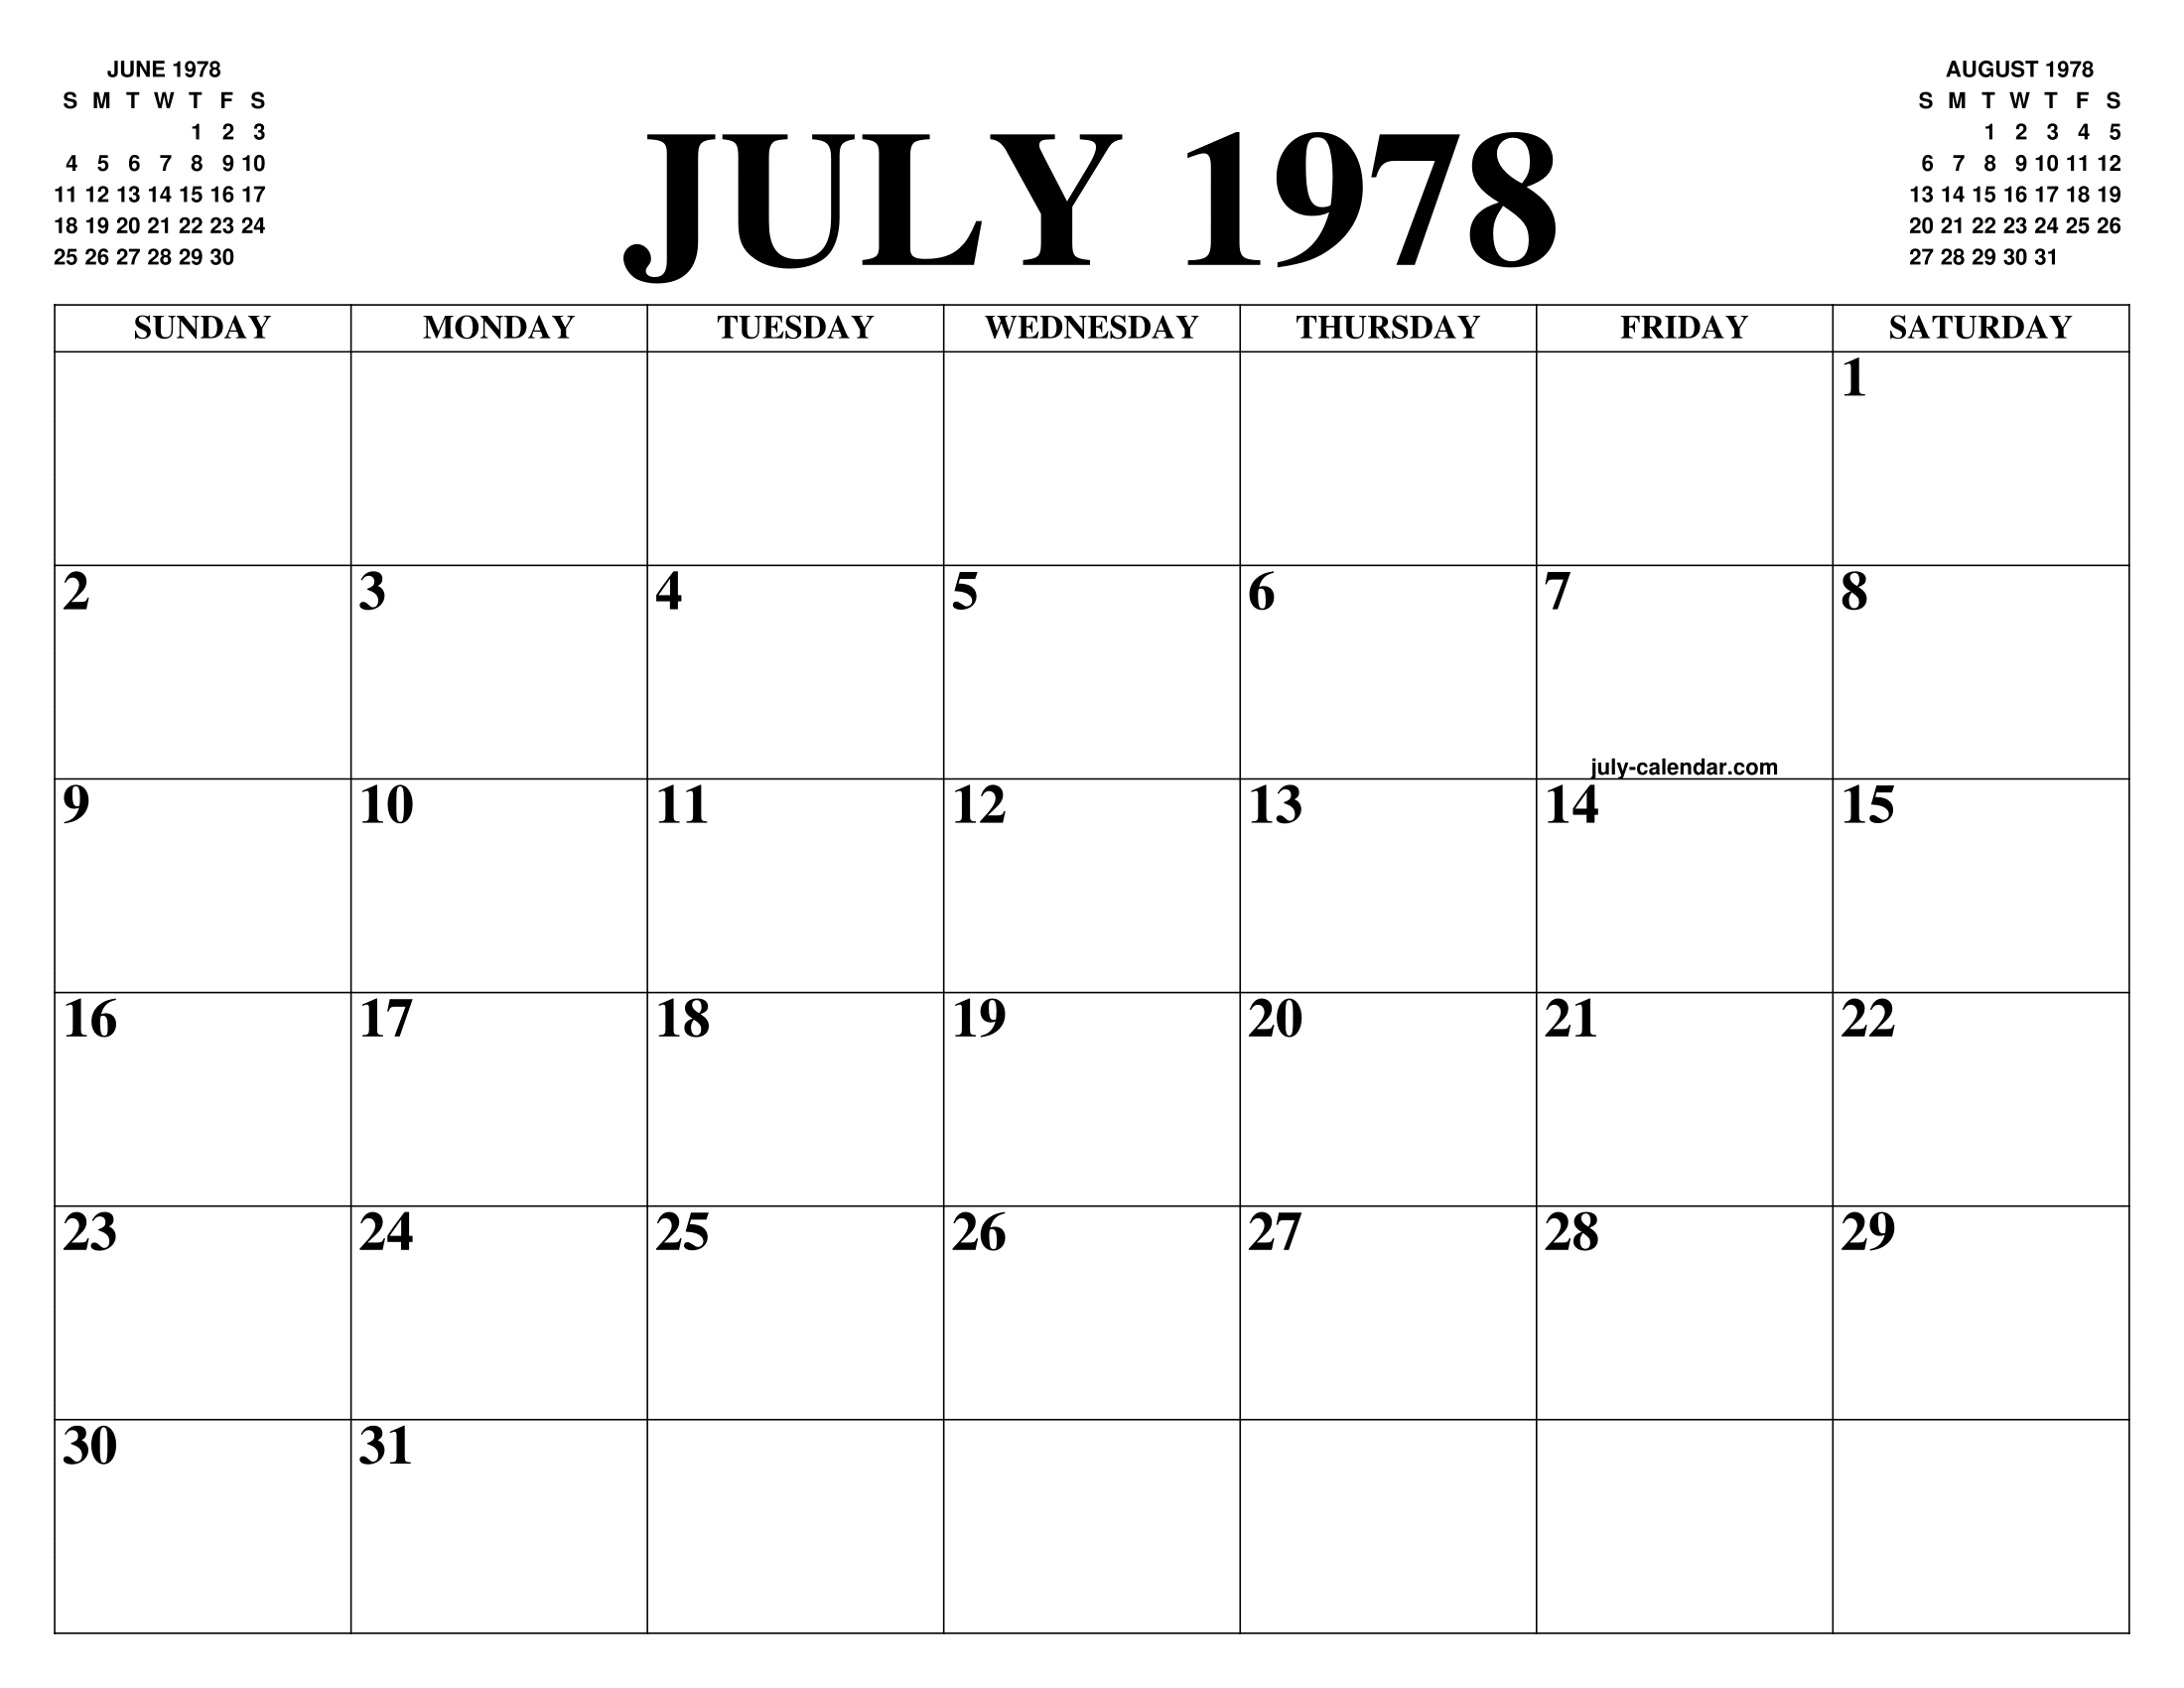 1978 Calendario.July 1978 Calendar Of The Month Free Printable July